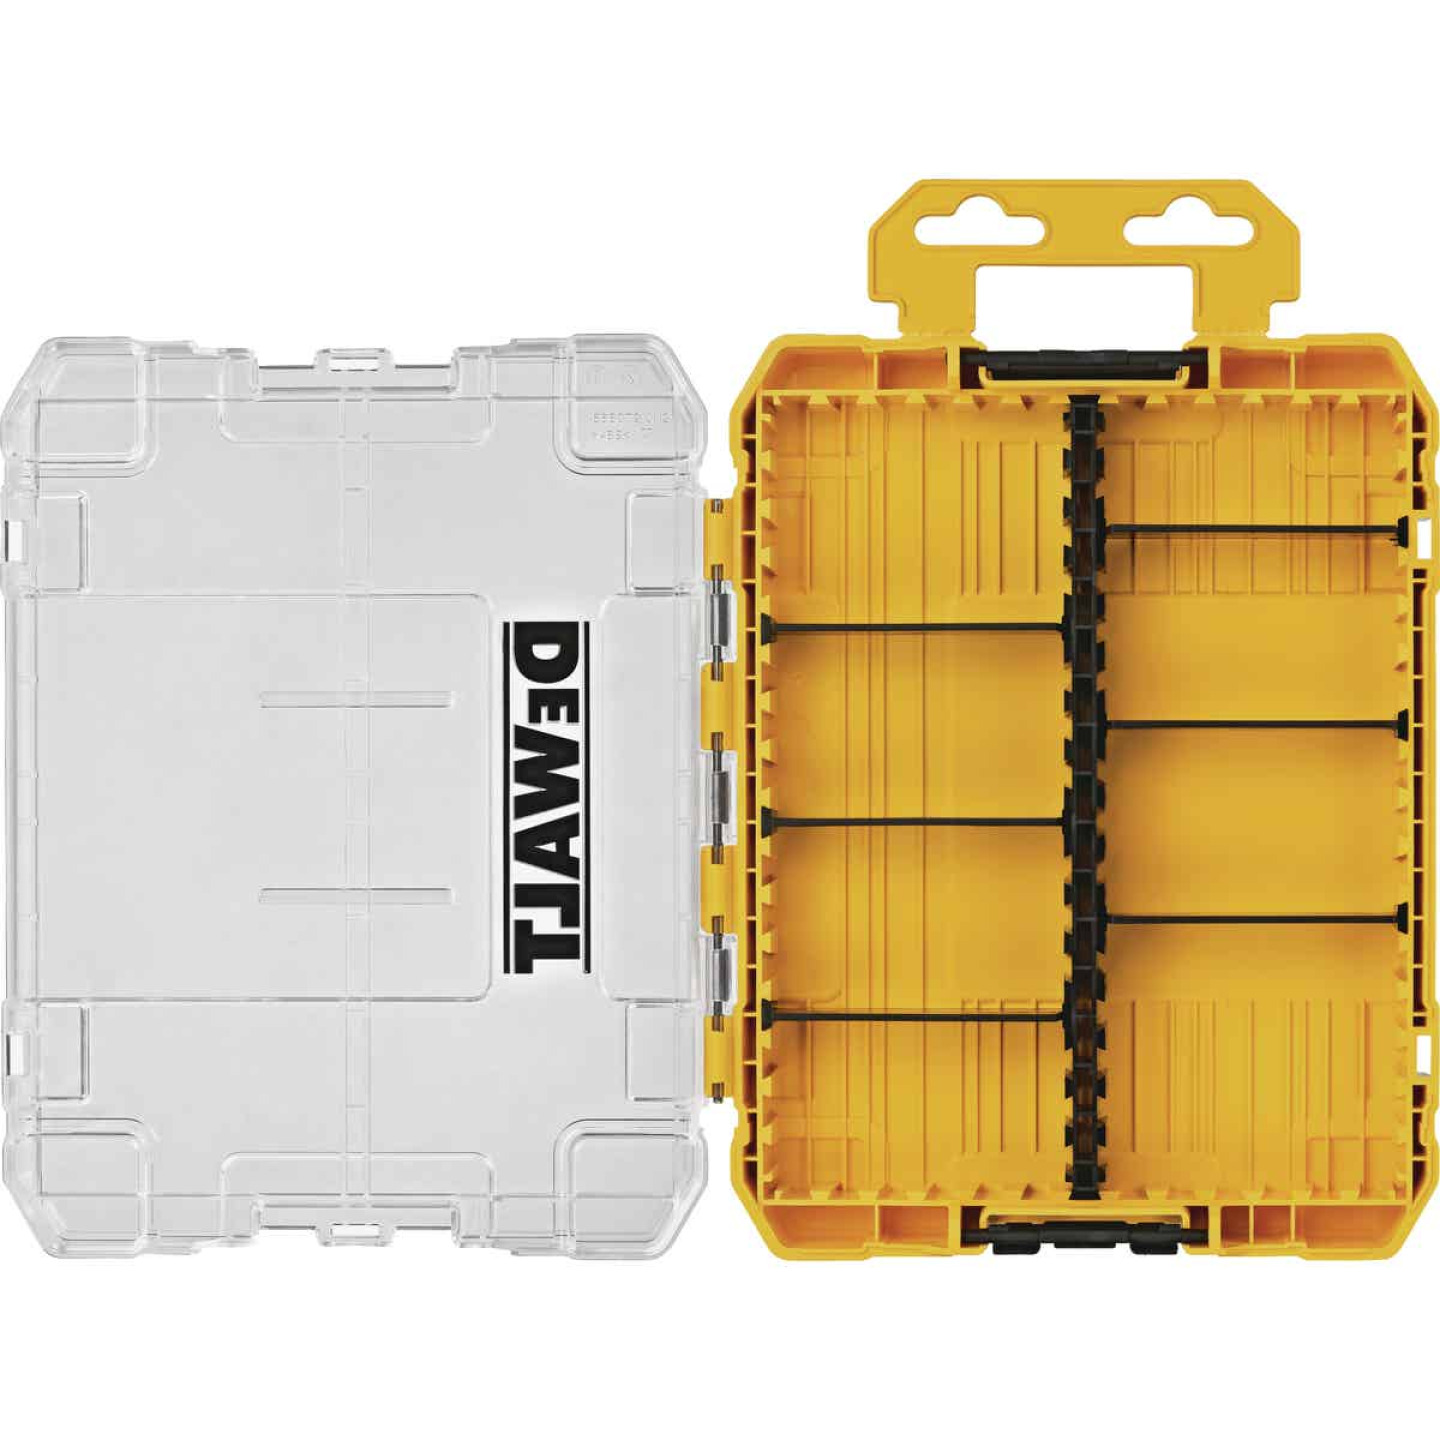 DeWalt Medium Size Tough Storage Case Set Image 1